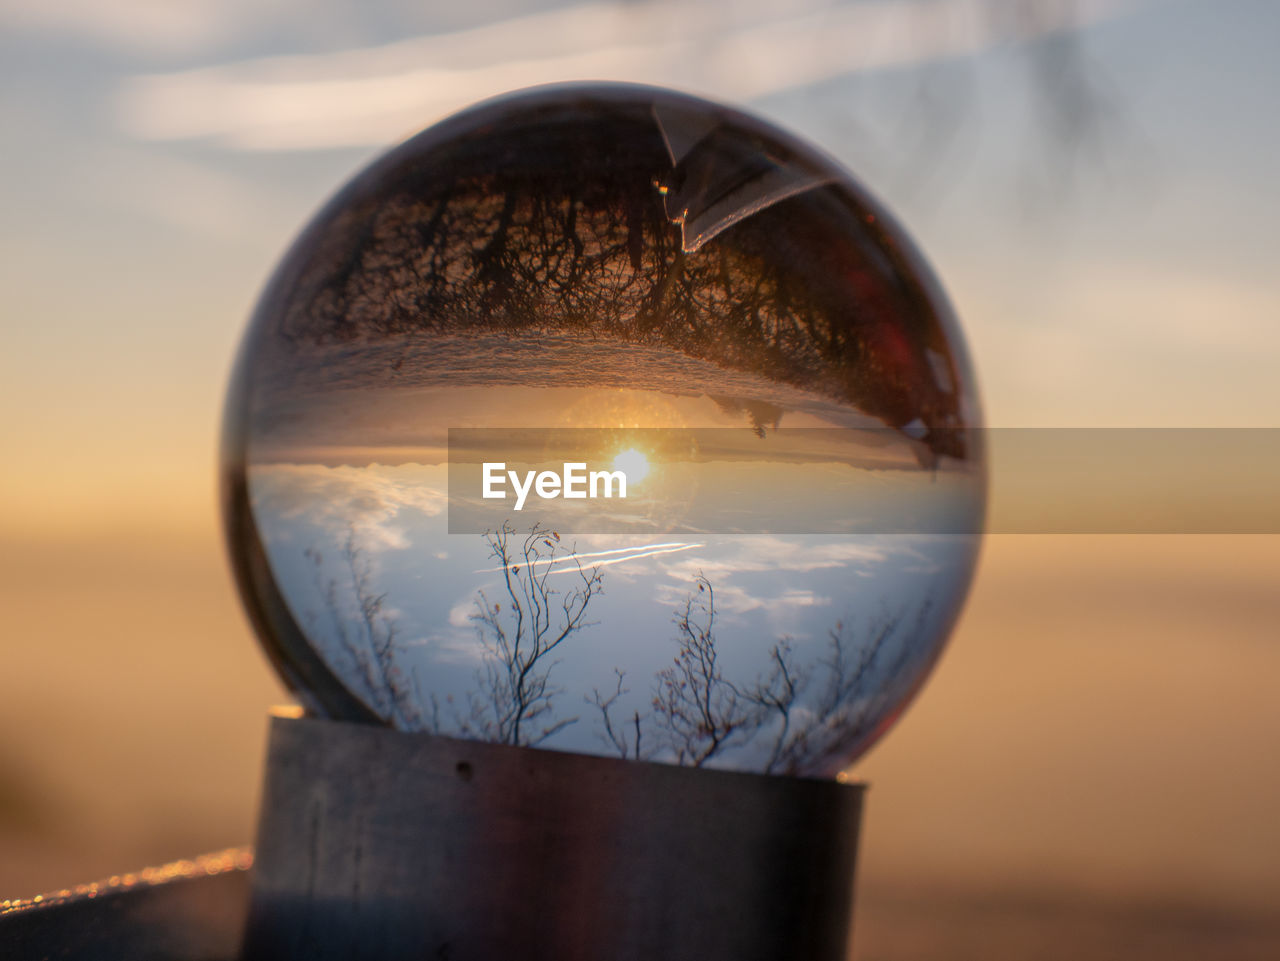 transparent, sky, glass - material, sphere, close-up, sunset, nature, crystal ball, reflection, no people, focus on foreground, outdoors, upside down, water, ball, scenics - nature, day, land, selective focus